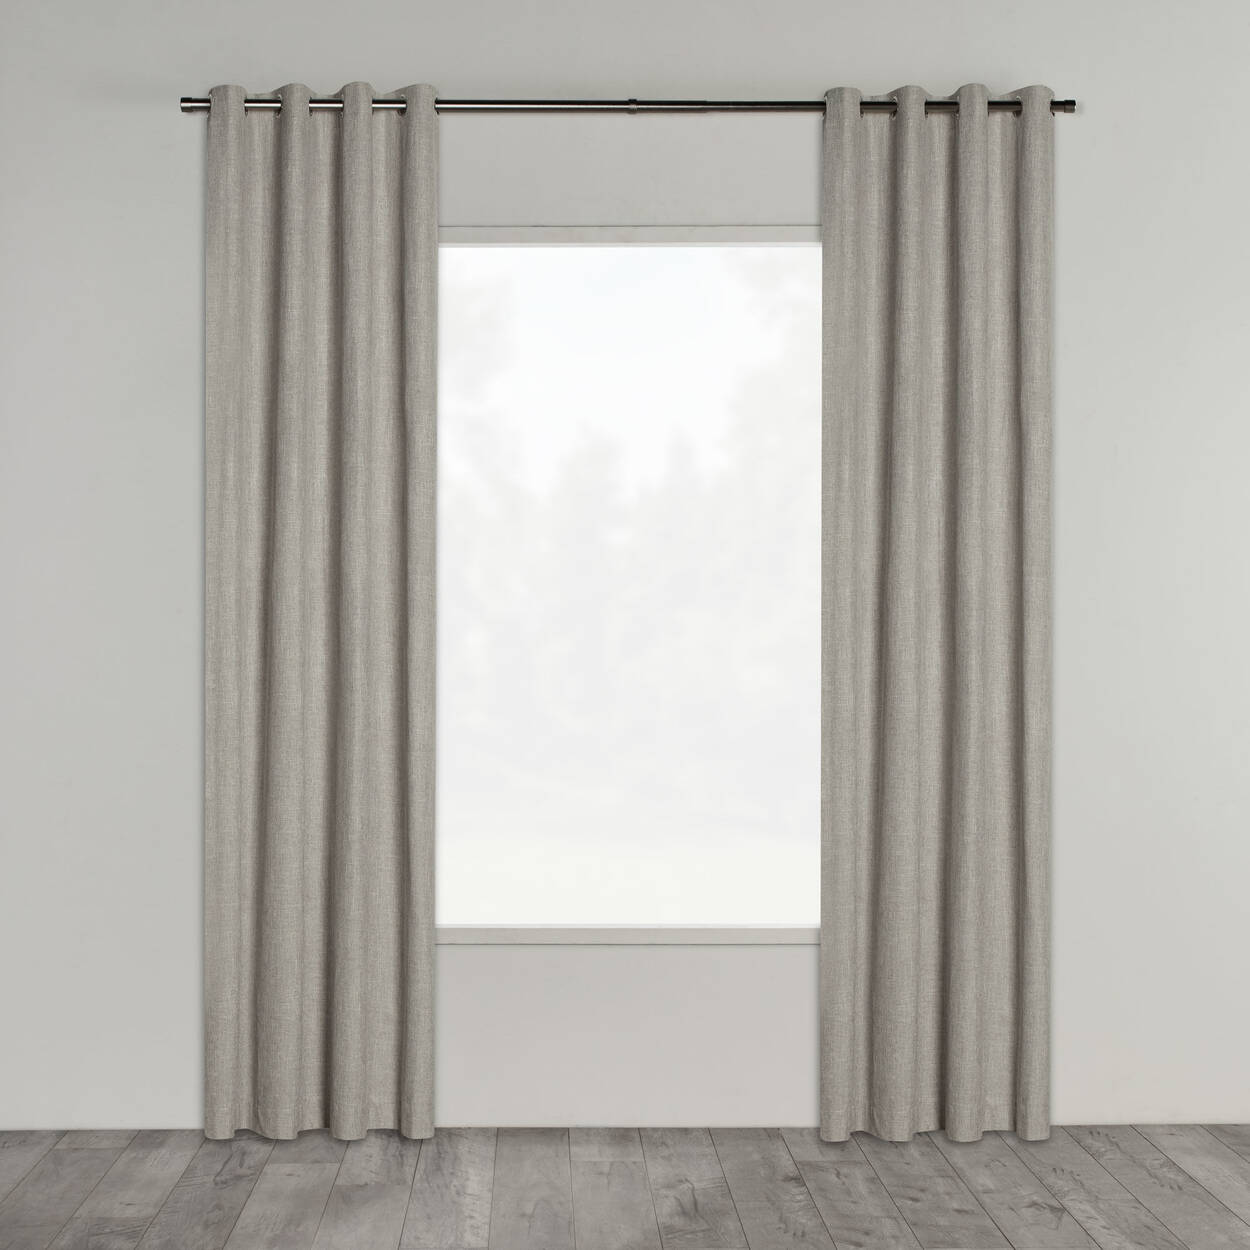 x drop eyelet curtains curtain description black product blackout with grey ttw silver dp width songmics out